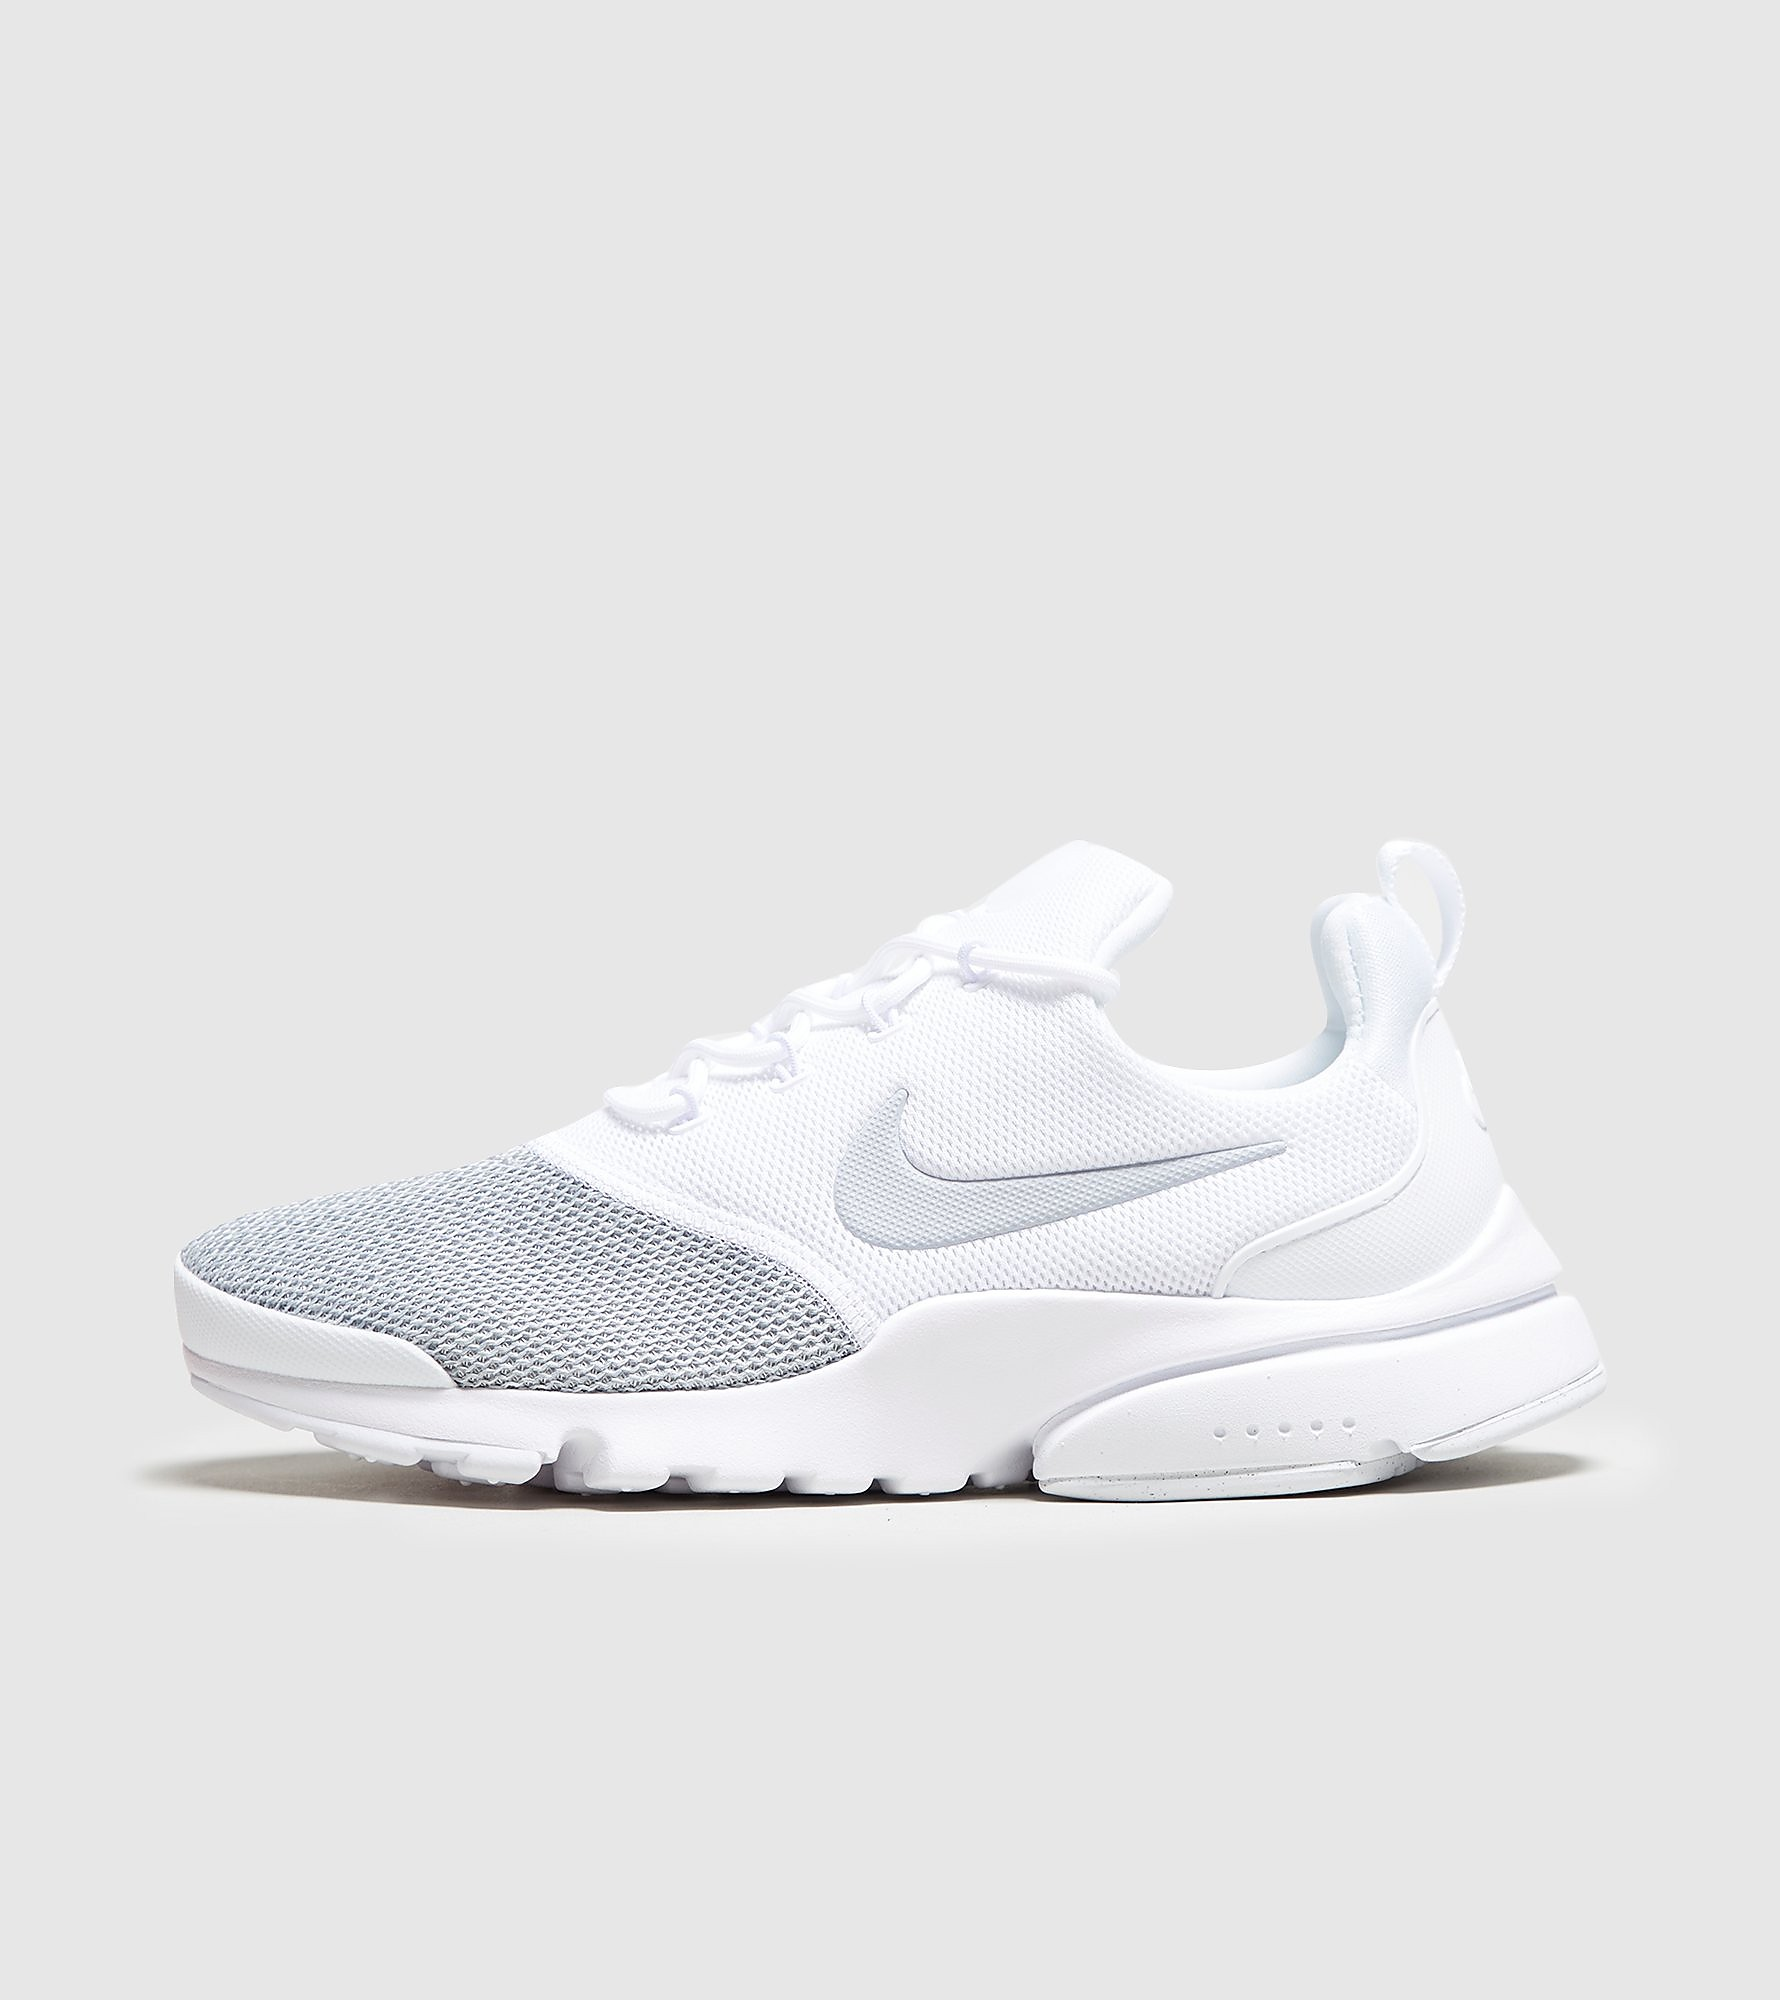 Nike Air Presto Fly SE Women's